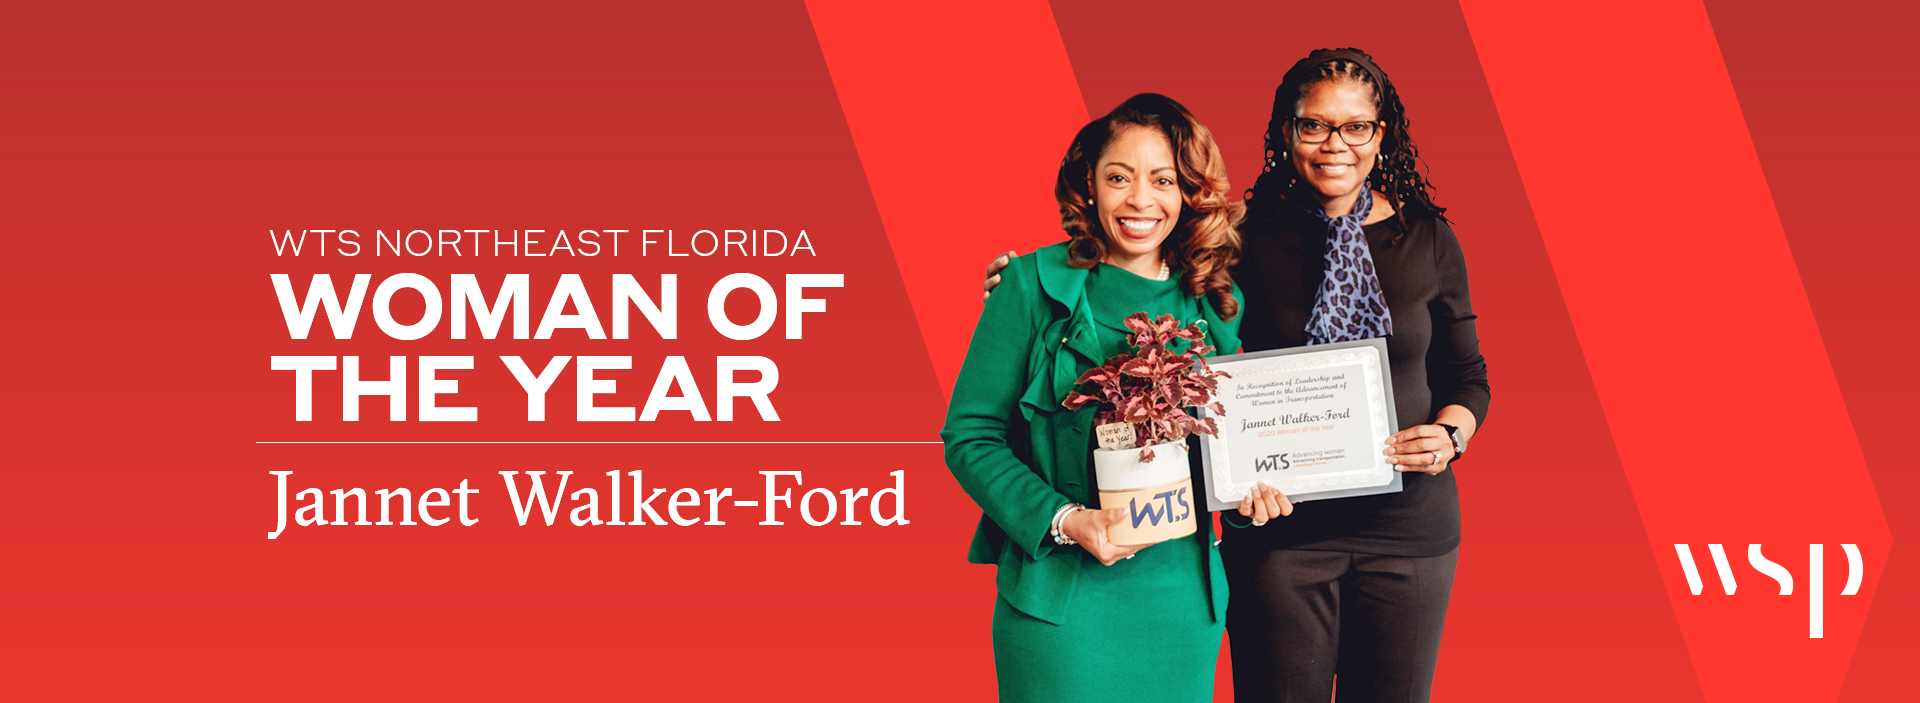 bnr-wsp-walker-ford-wts-woman-of-year